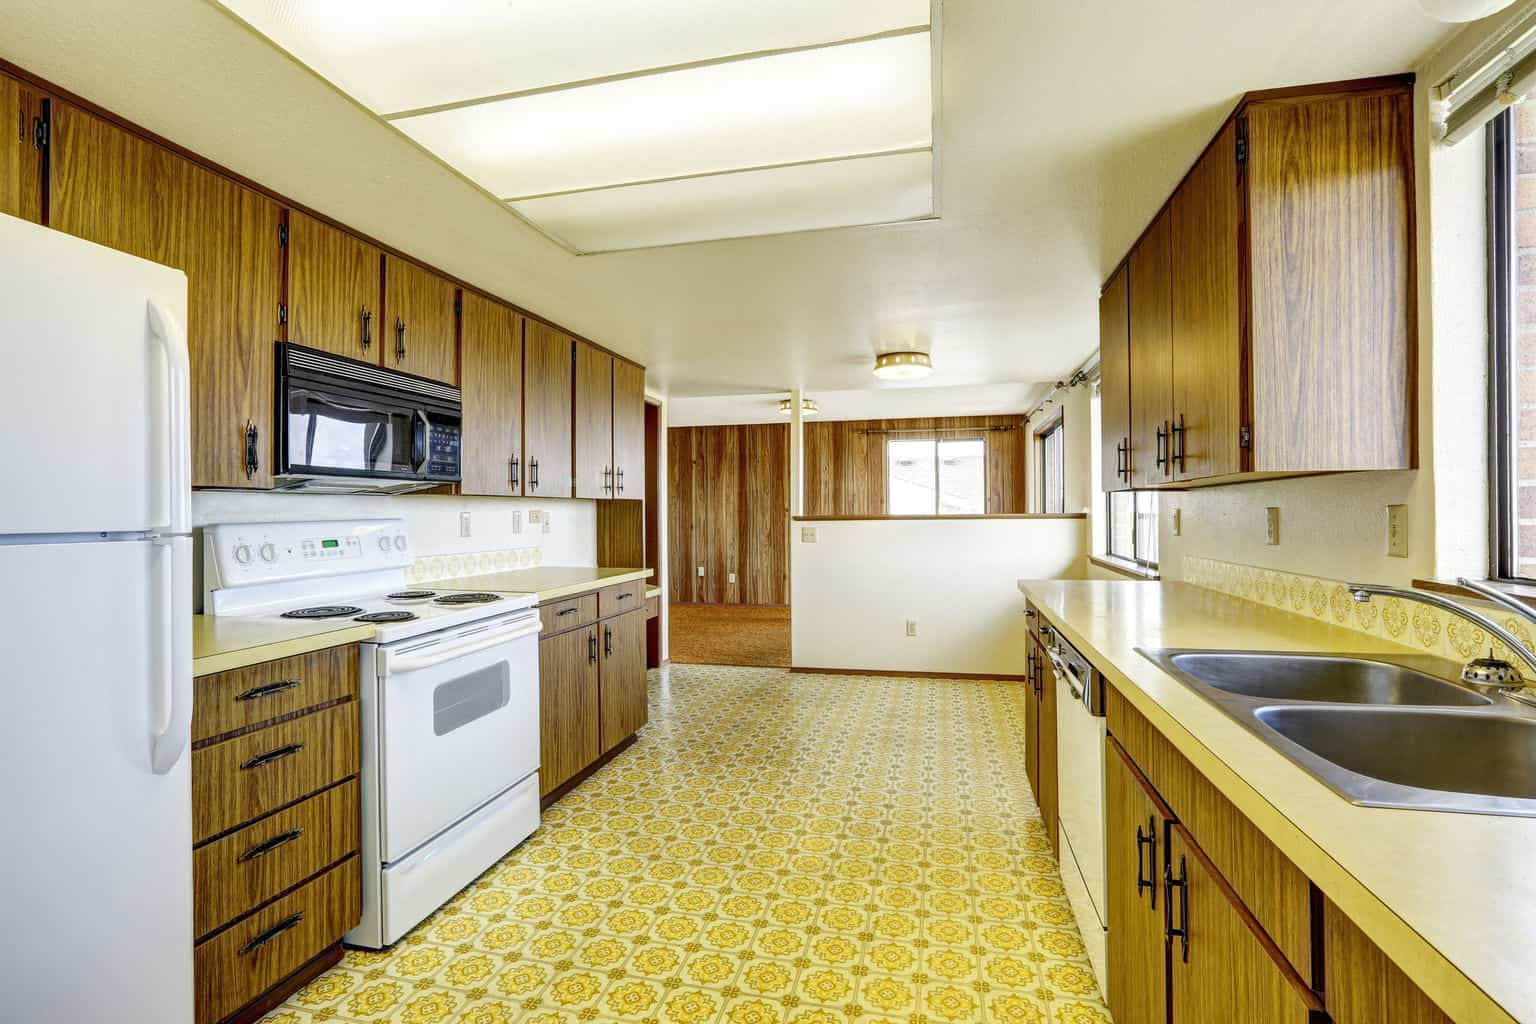 Installing Kitchen Linoleum Flooring Is A Sure Way To Add Value Your Home As The Cost Minimal And End Result Transformative